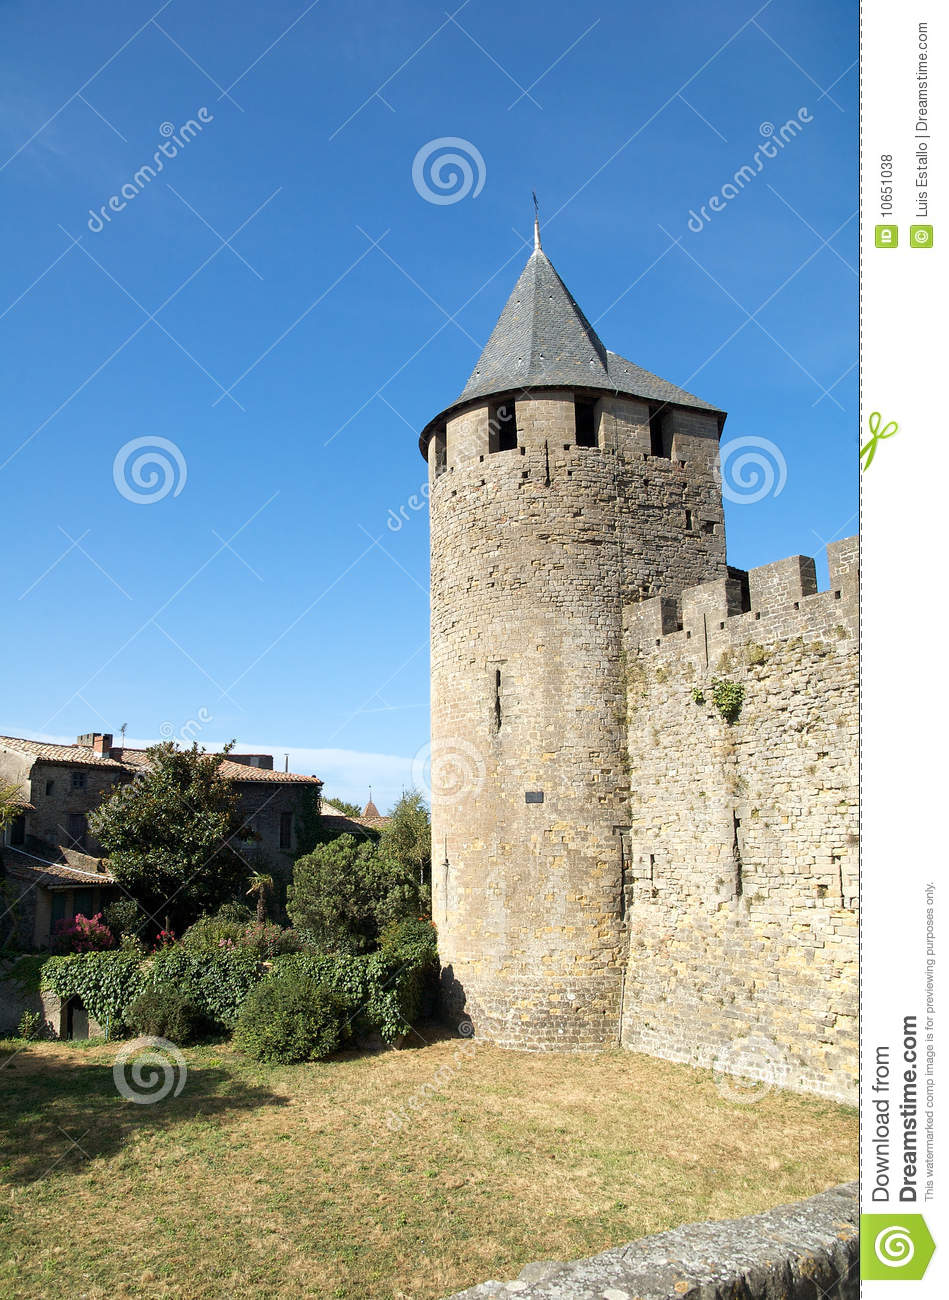 Tower of the castle 2